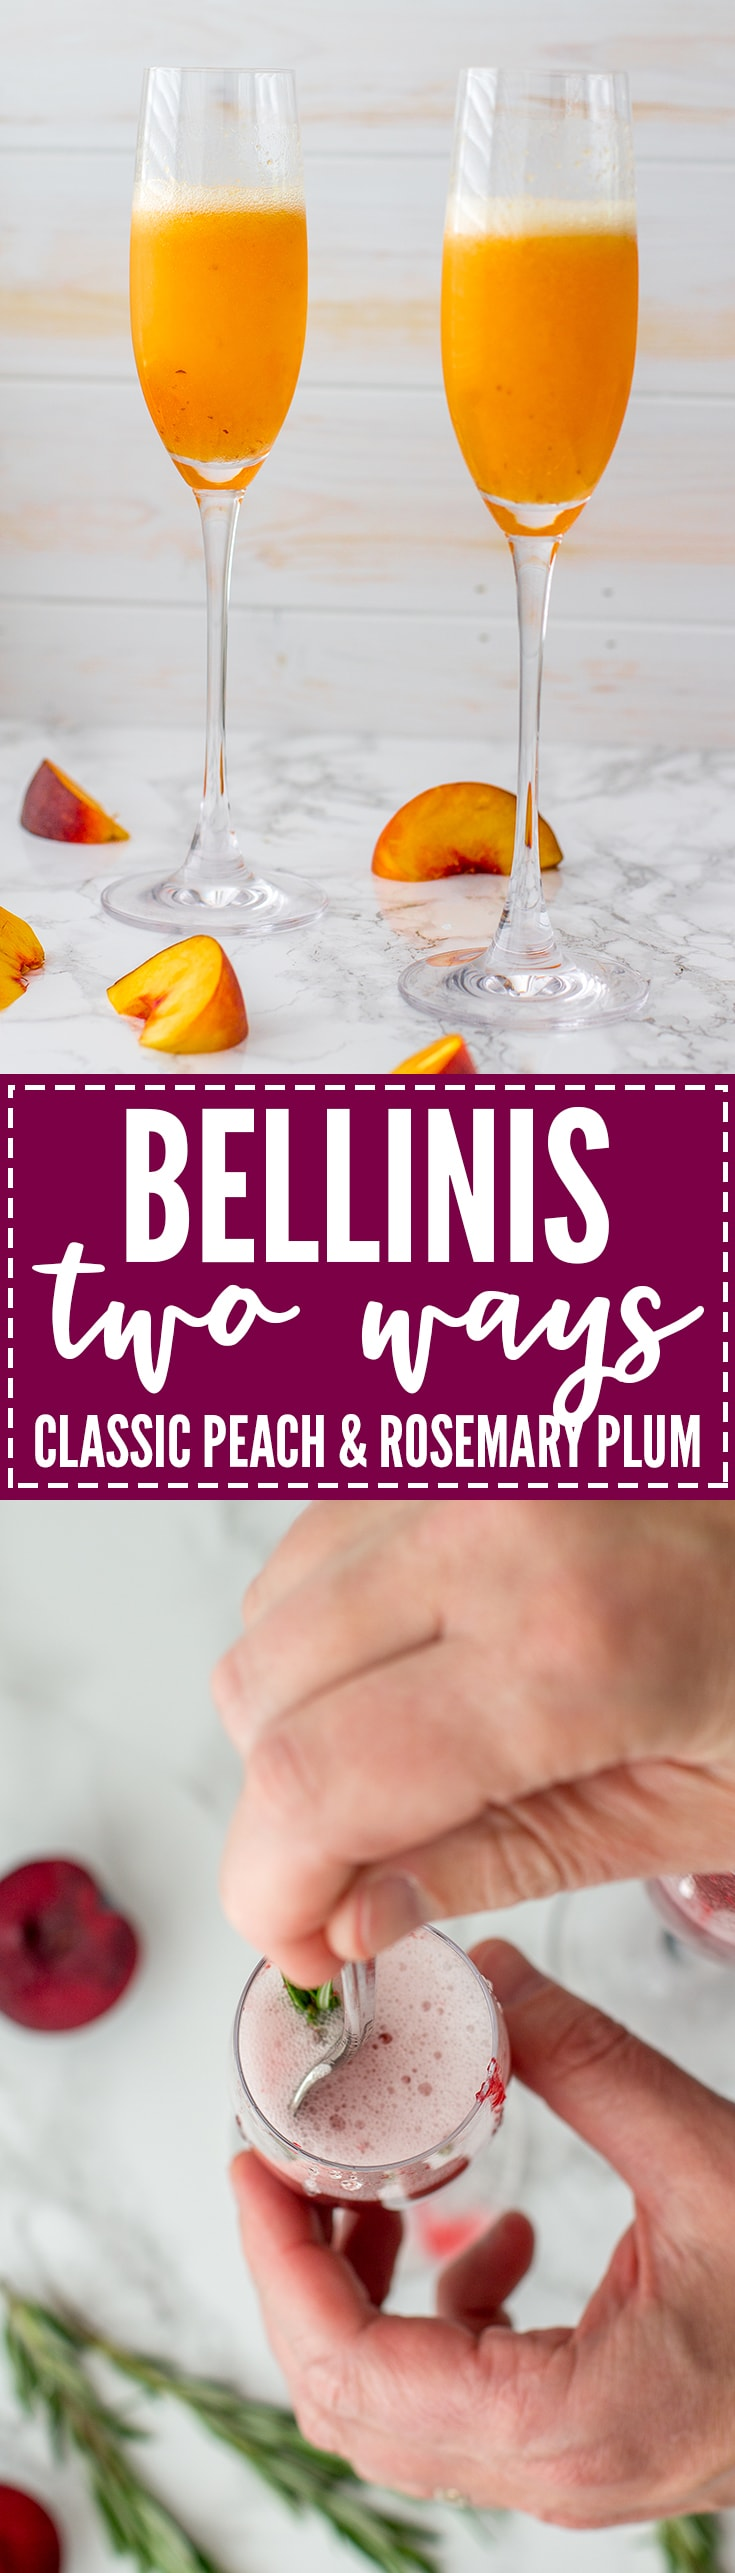 Learn to make a Bellini - the essential sparkling cocktail with sweet Prosecco - two ways. Classic peach, or vibrant rosemary plum!